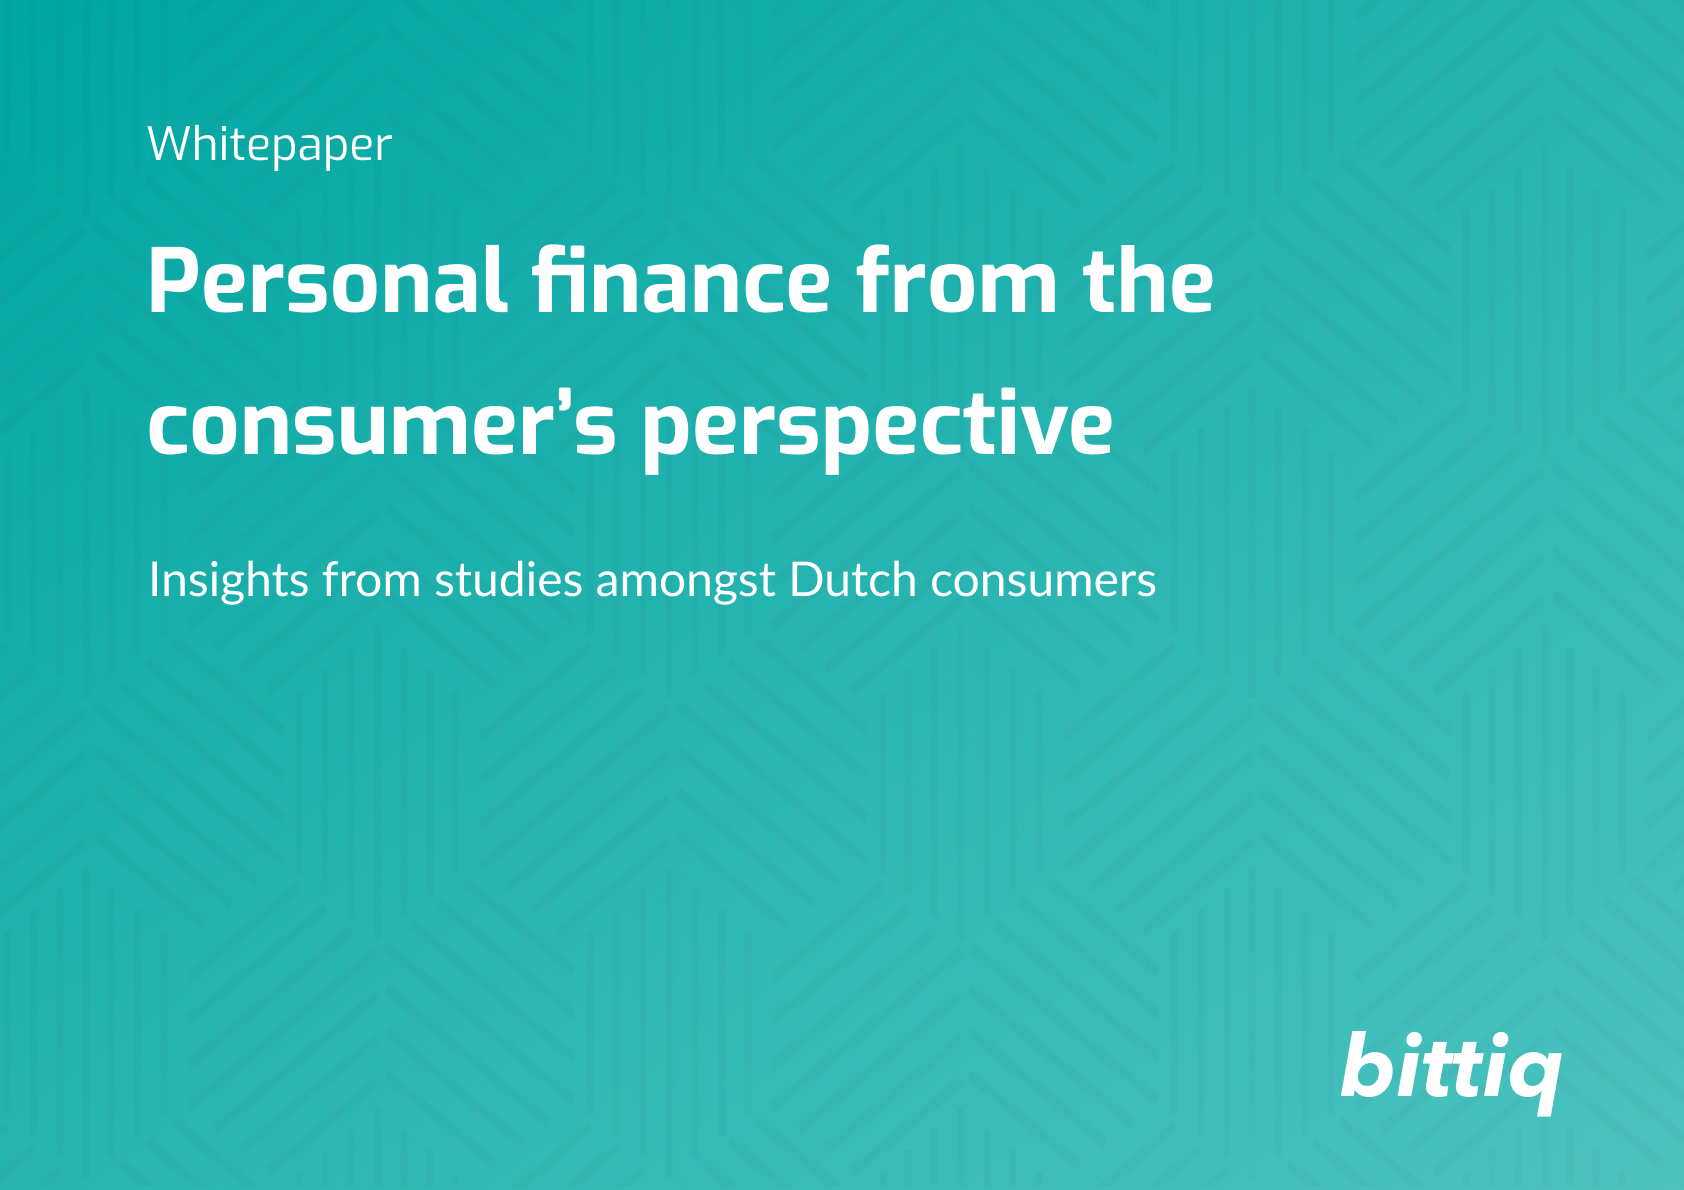 Whitepaper - Personal finance from the consumer's perspective